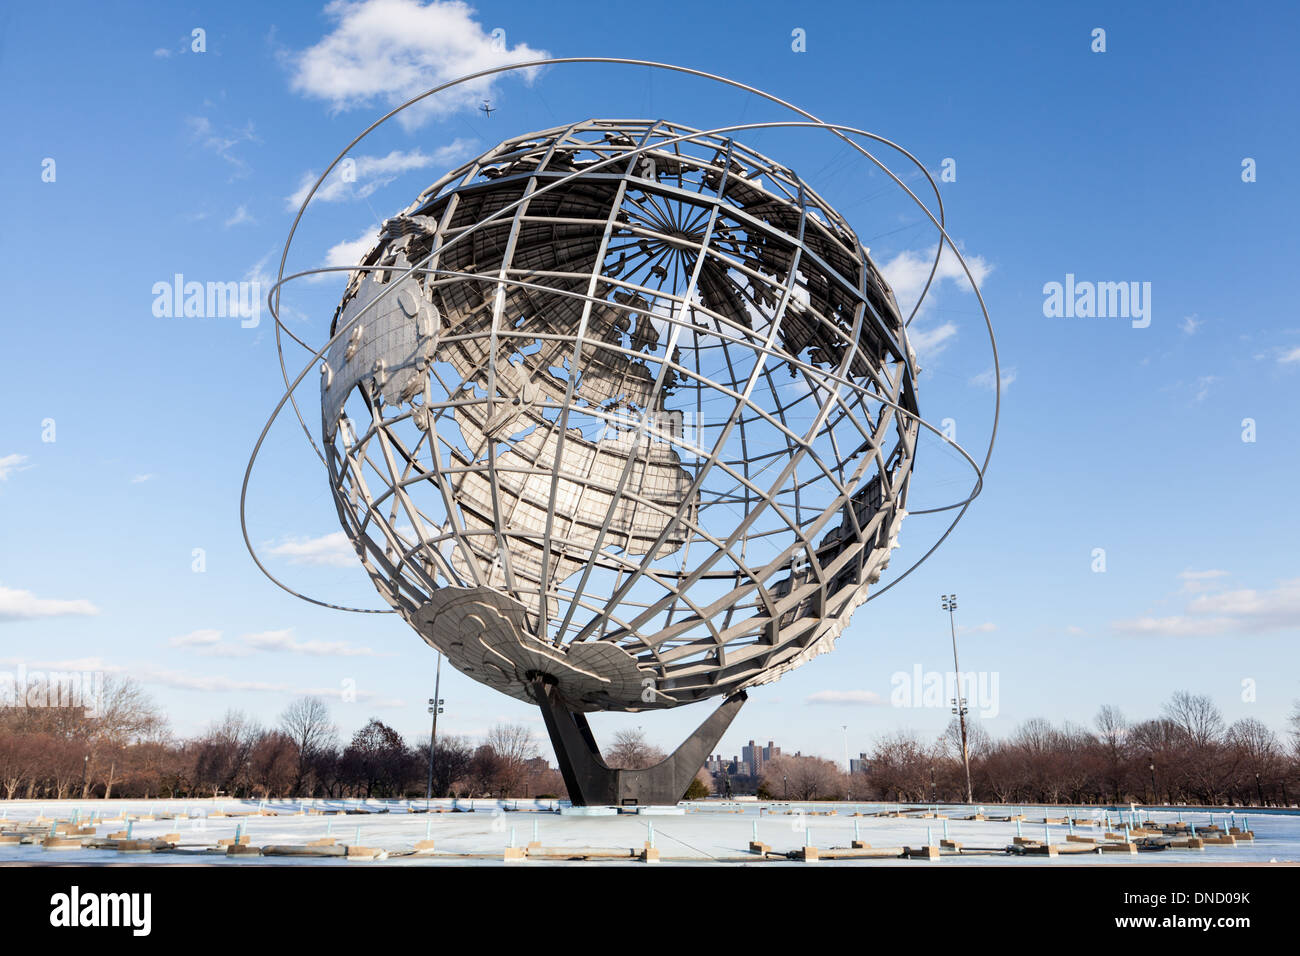 Unisphere, stainless steel, 12 stories high, built for 1964 World's Fair, Flushing Meadows, Queens, New York - Stock Image